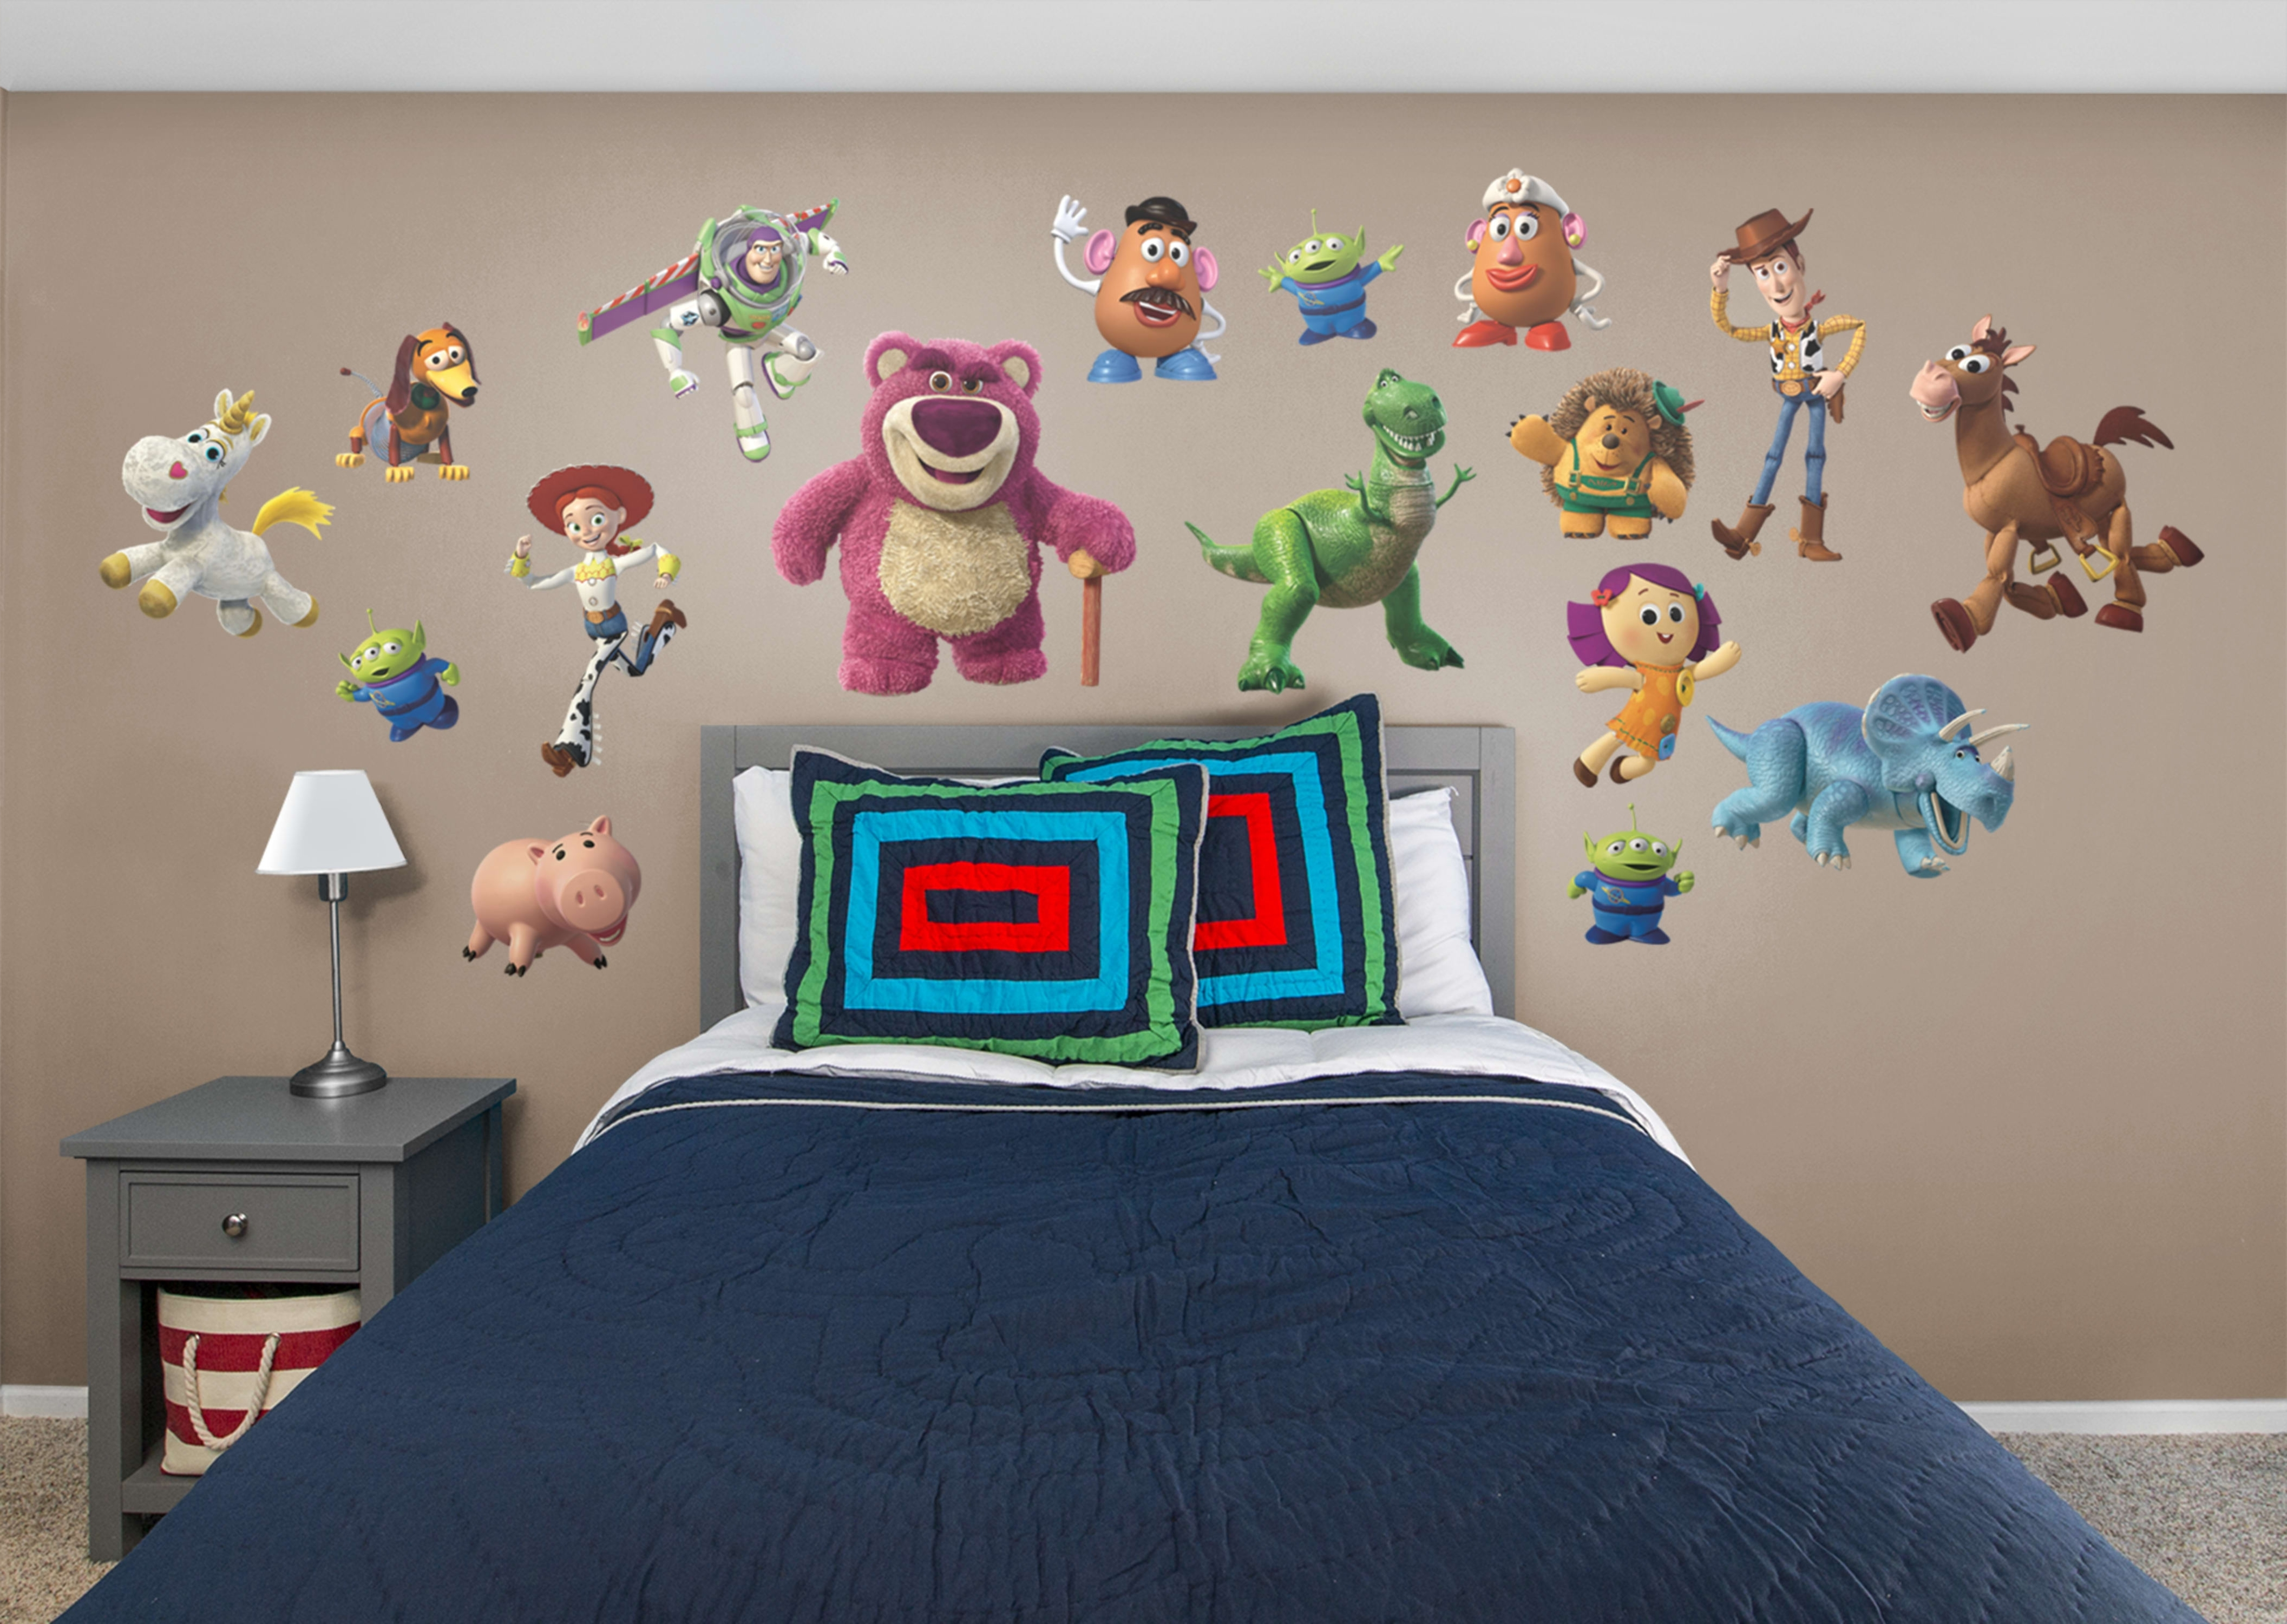 Shop Fathead® For Toy Story Decor (View 2 of 15)